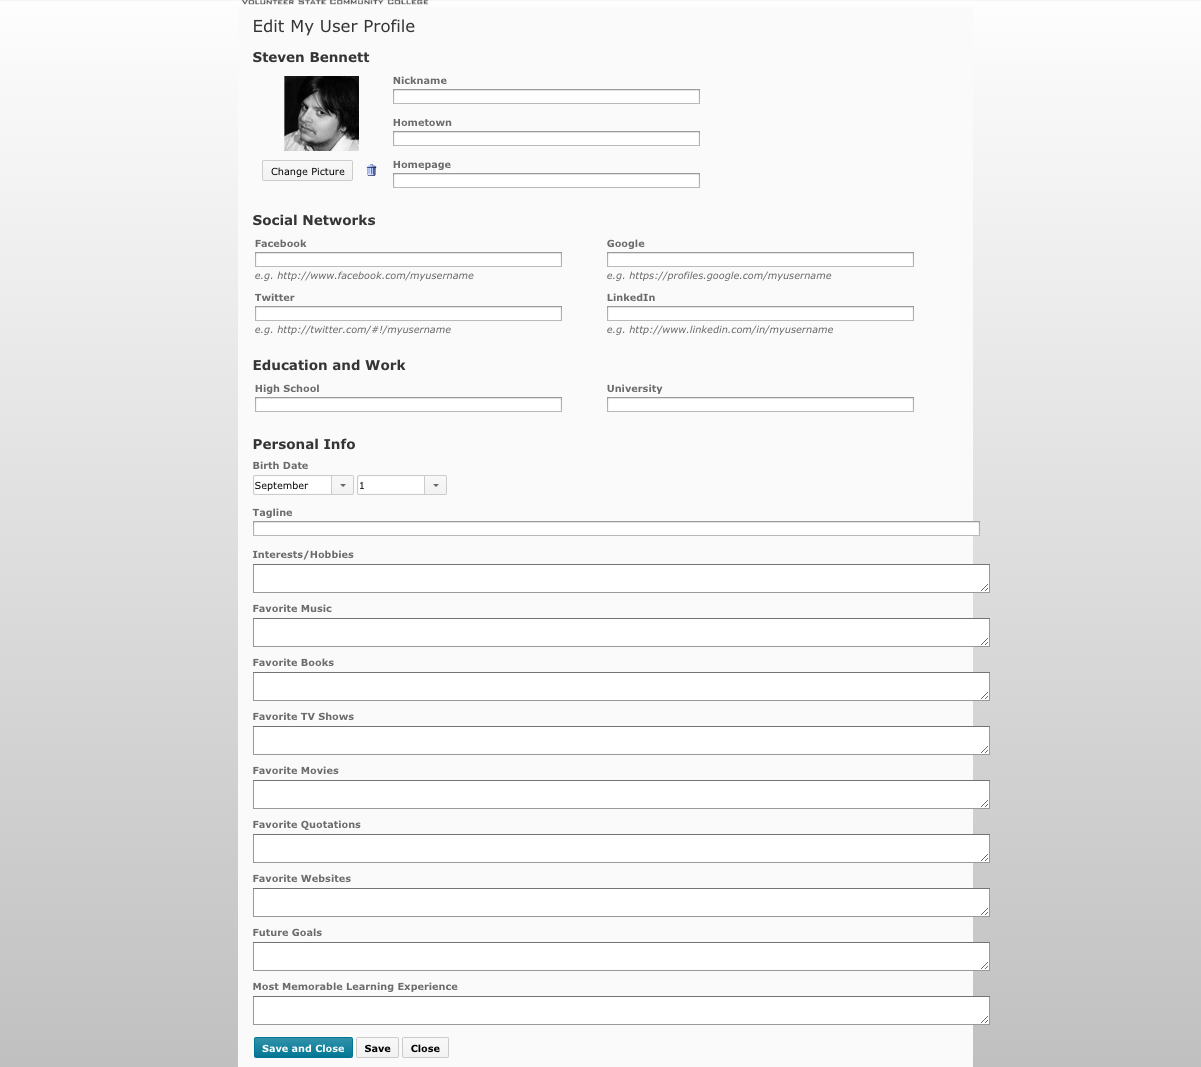 This is the Edit Profile screen in eLearn